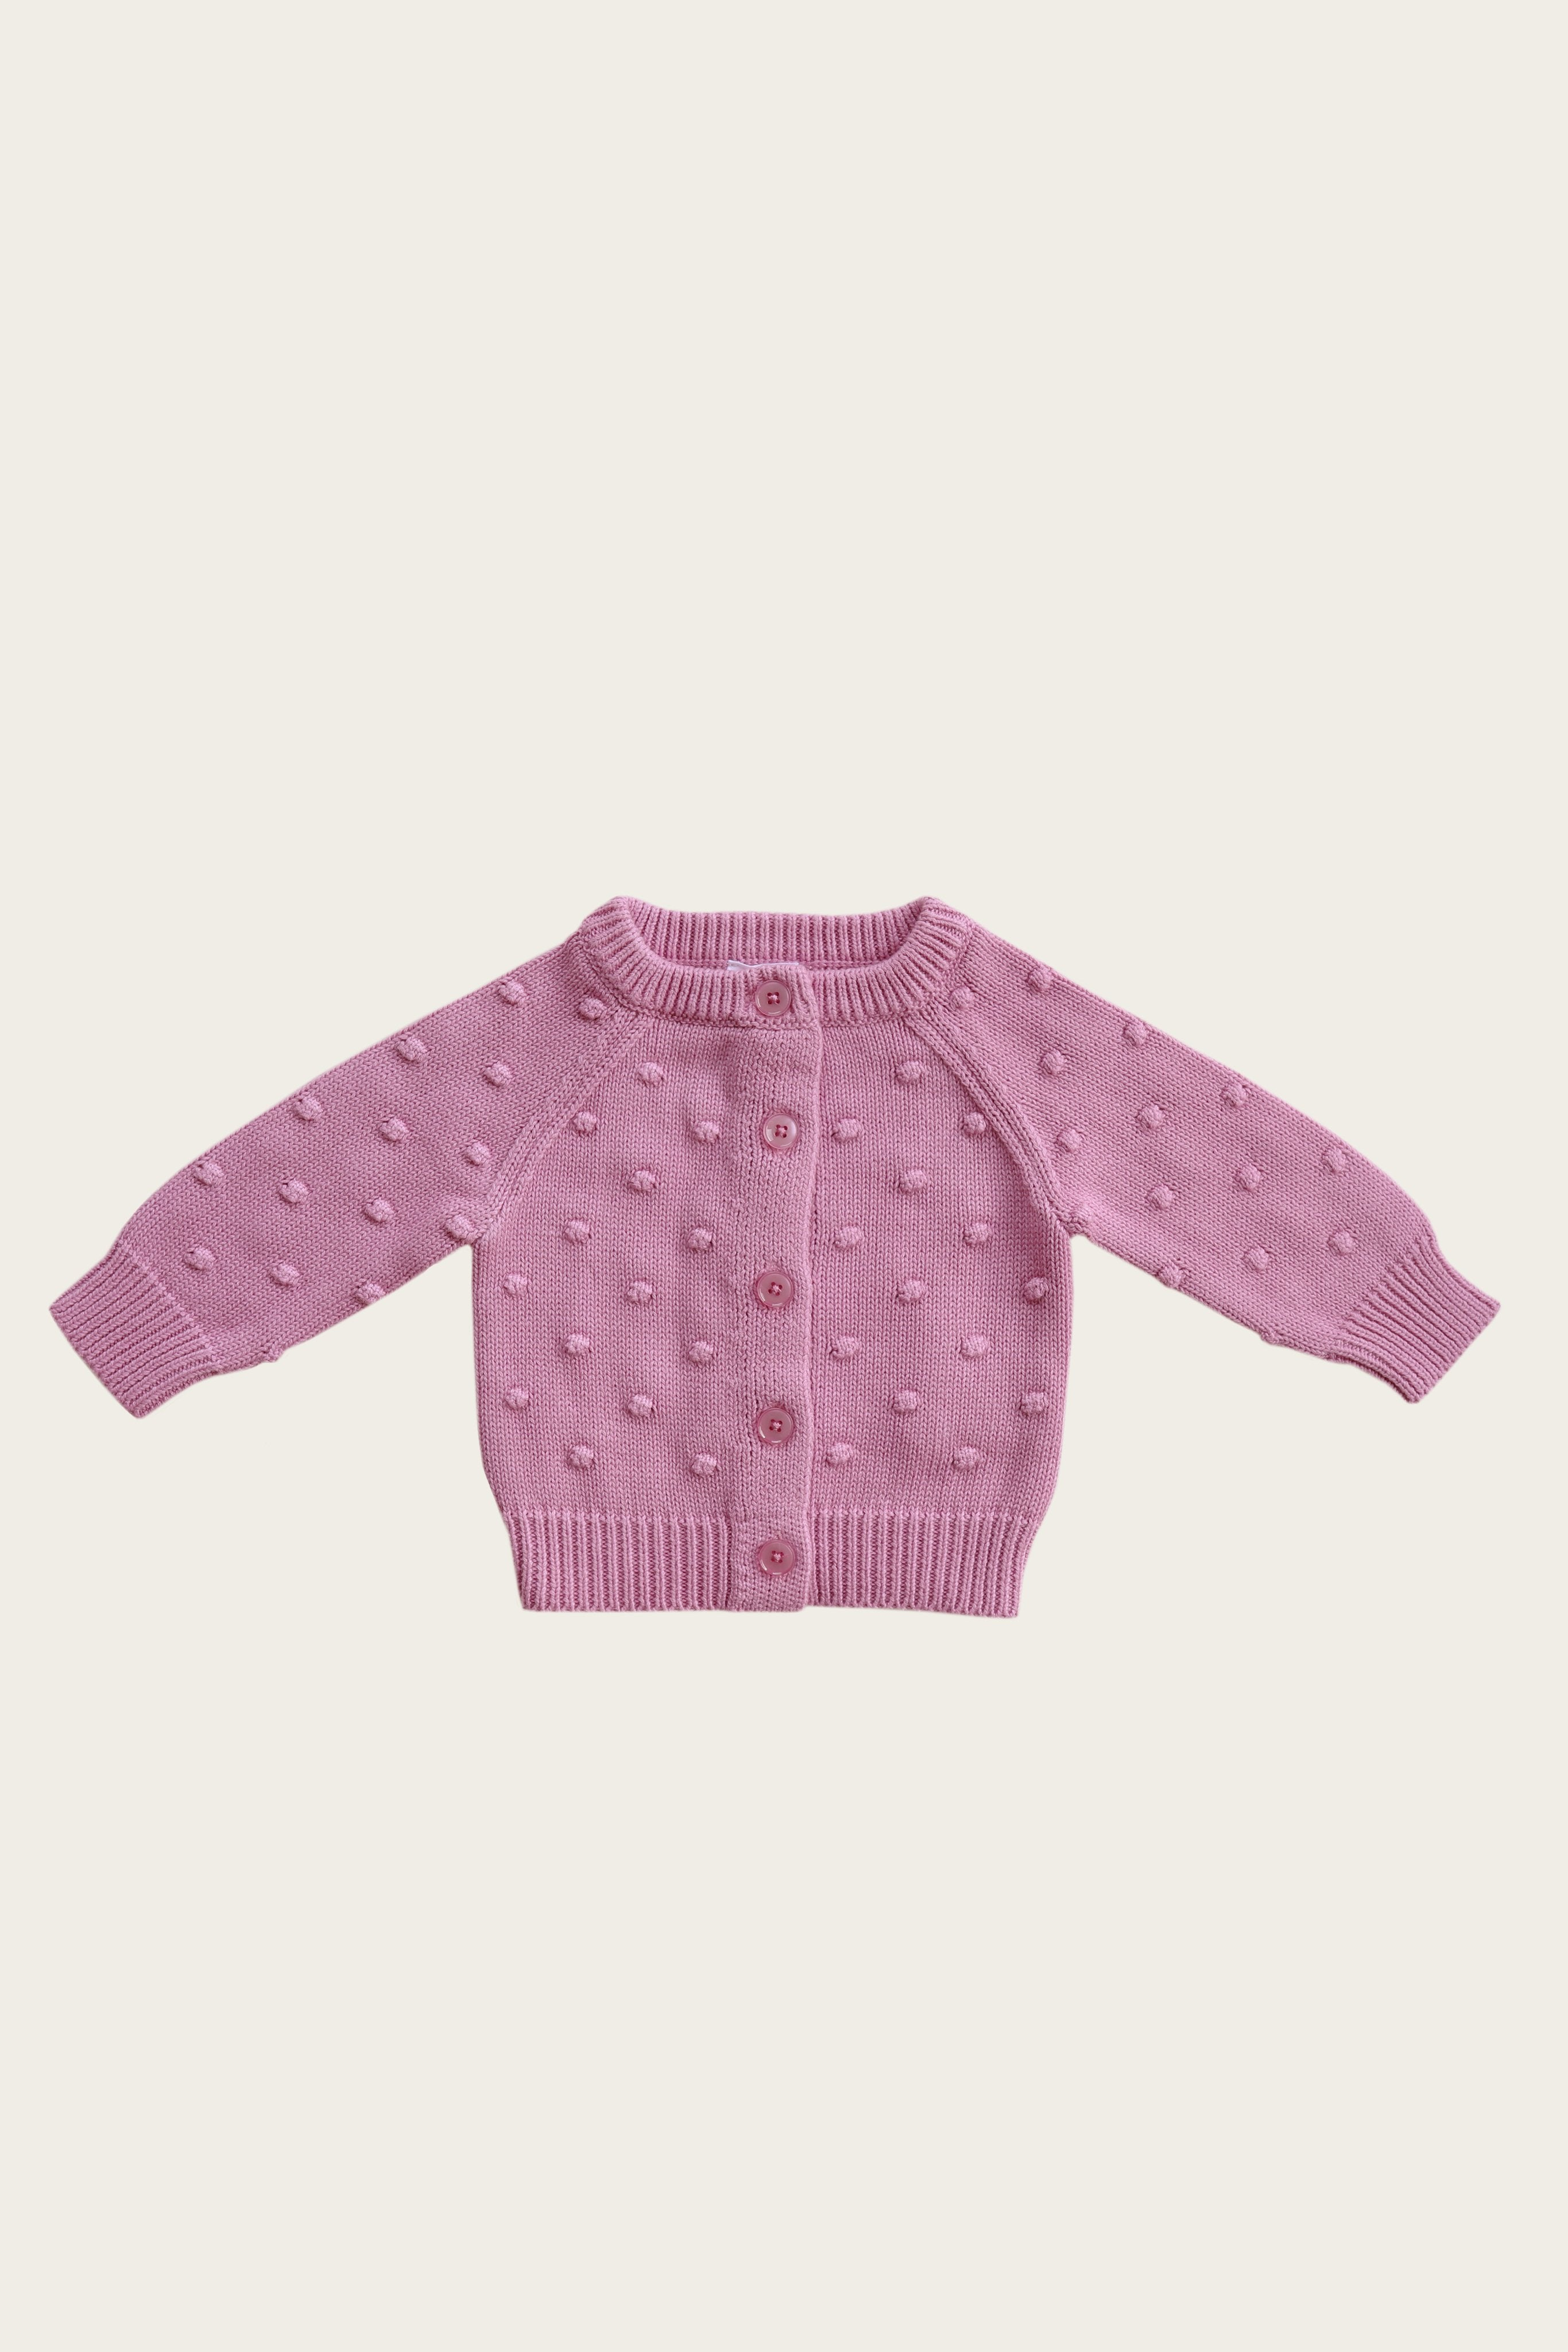 Dotty Cardigan - Princess